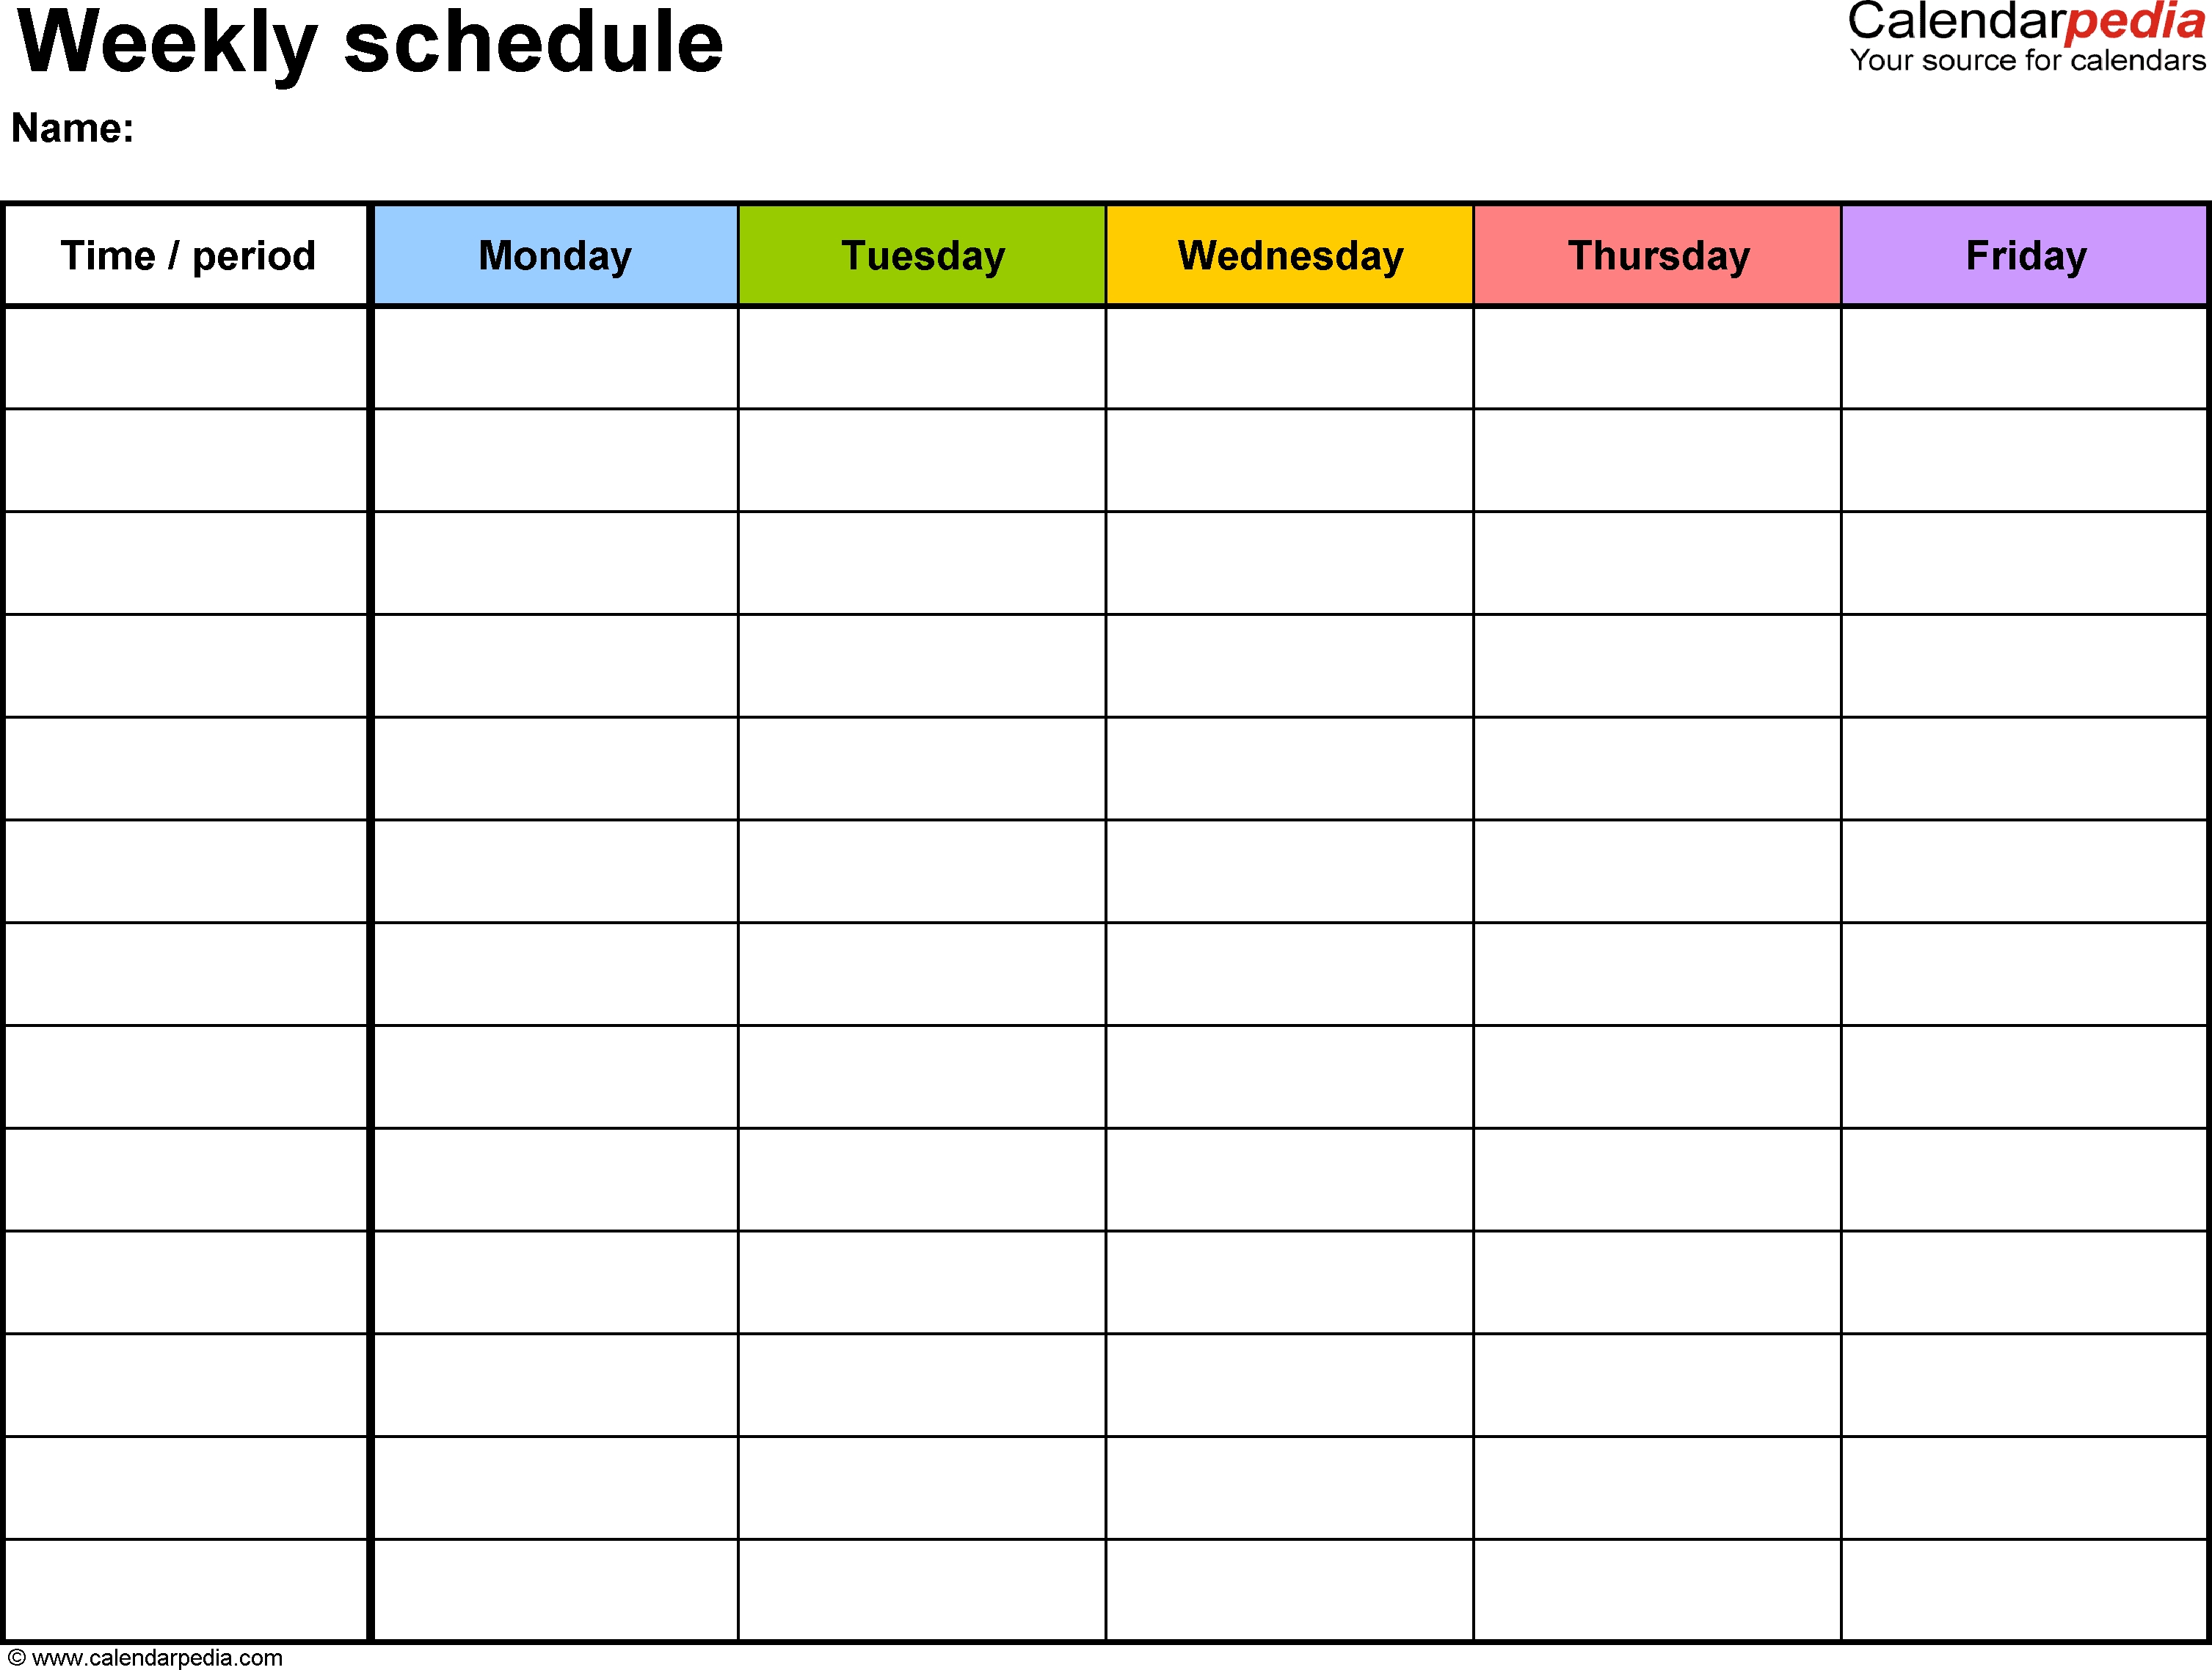 Free Weekly Schedule Templates For Word - 18 Templates-Calendar 2020 Template For Summer Camp Schedule